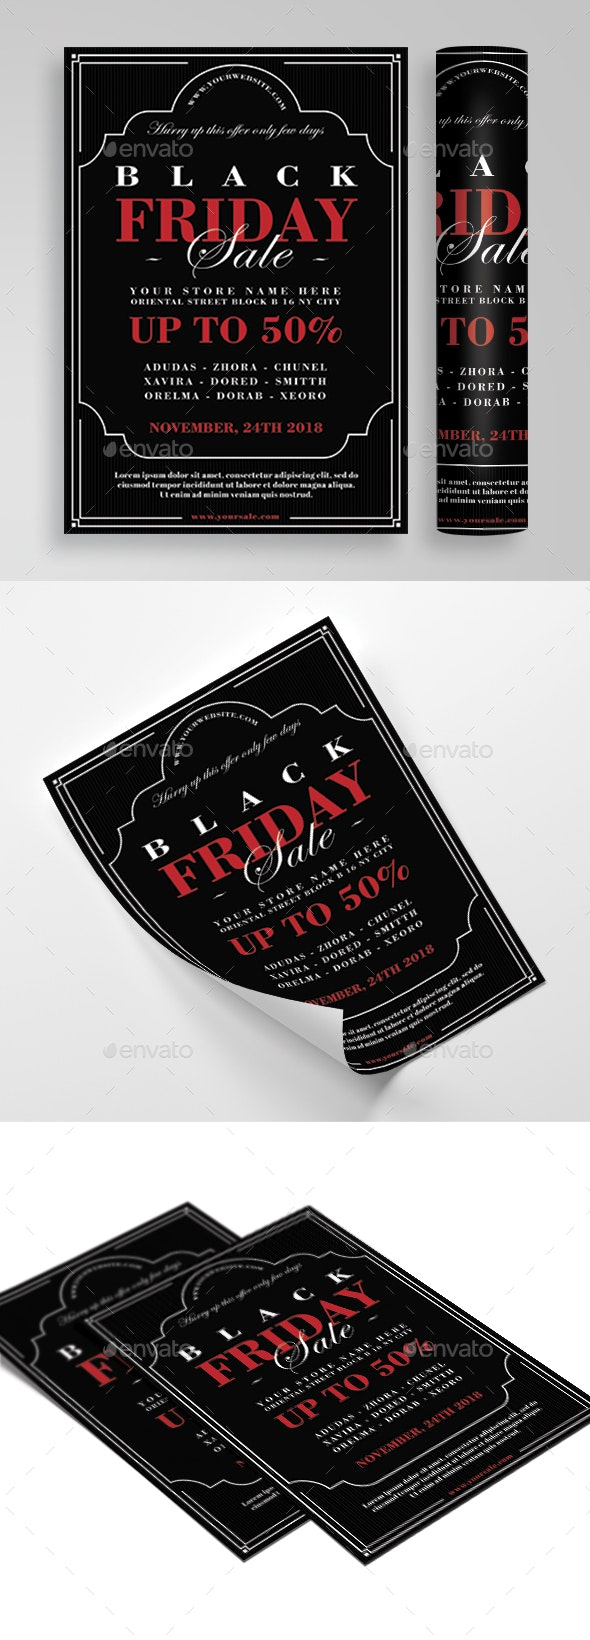 Black Friday - Commerce Flyers